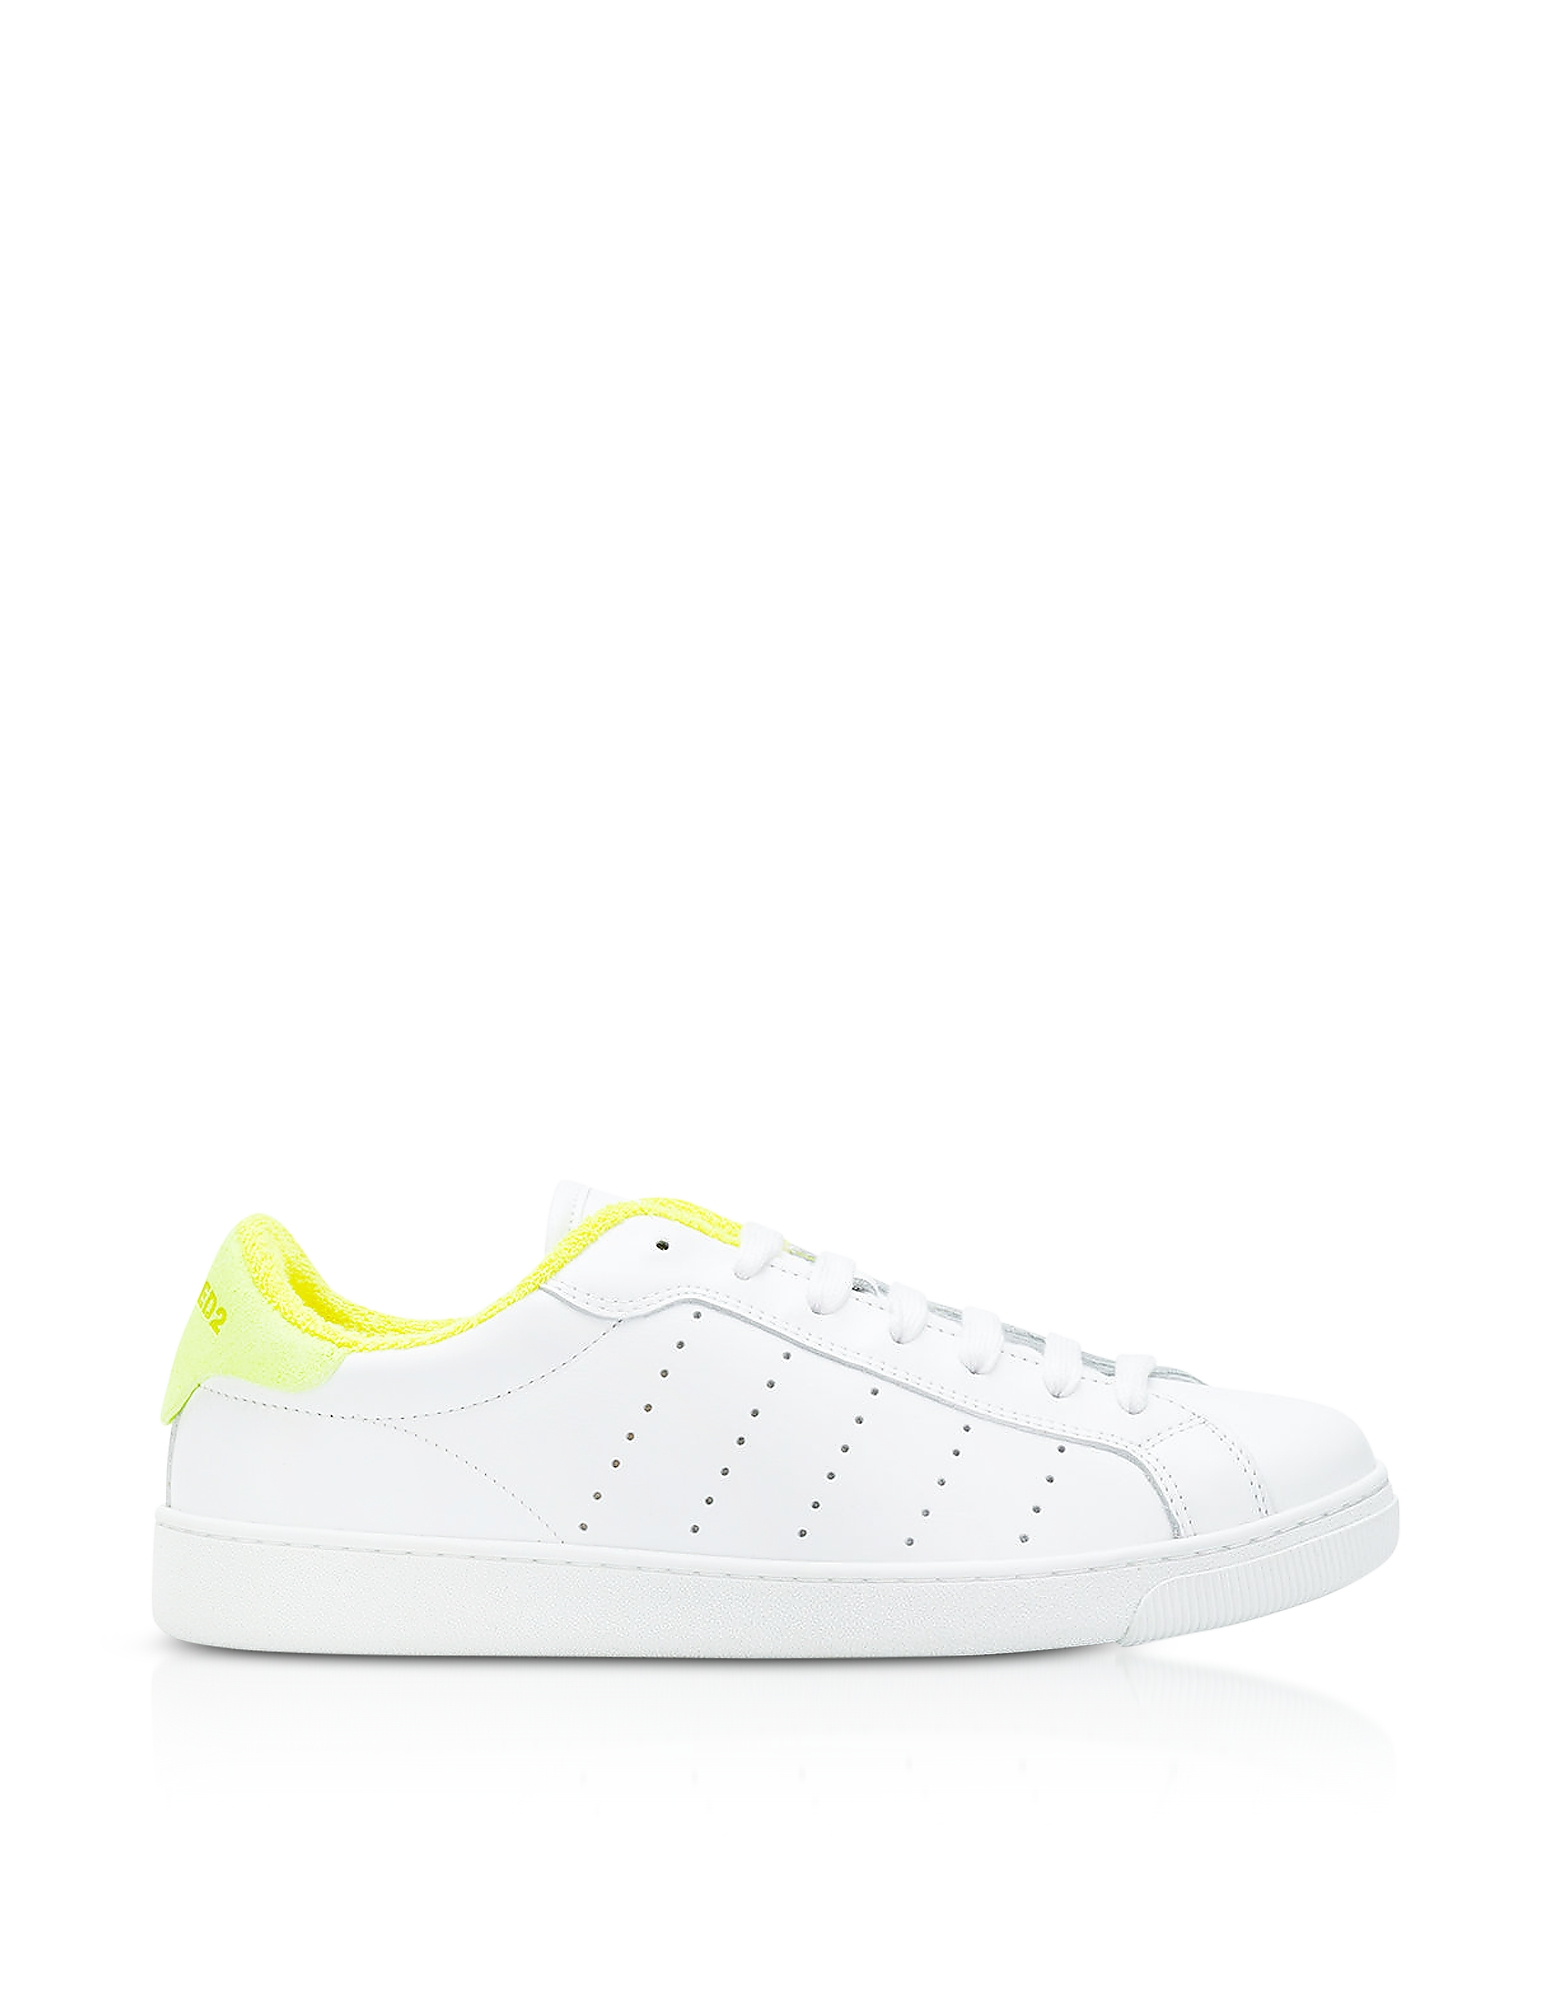 DSquared2 Shoes, White and Neon Yellow Leather Women's Low Top Sneakers